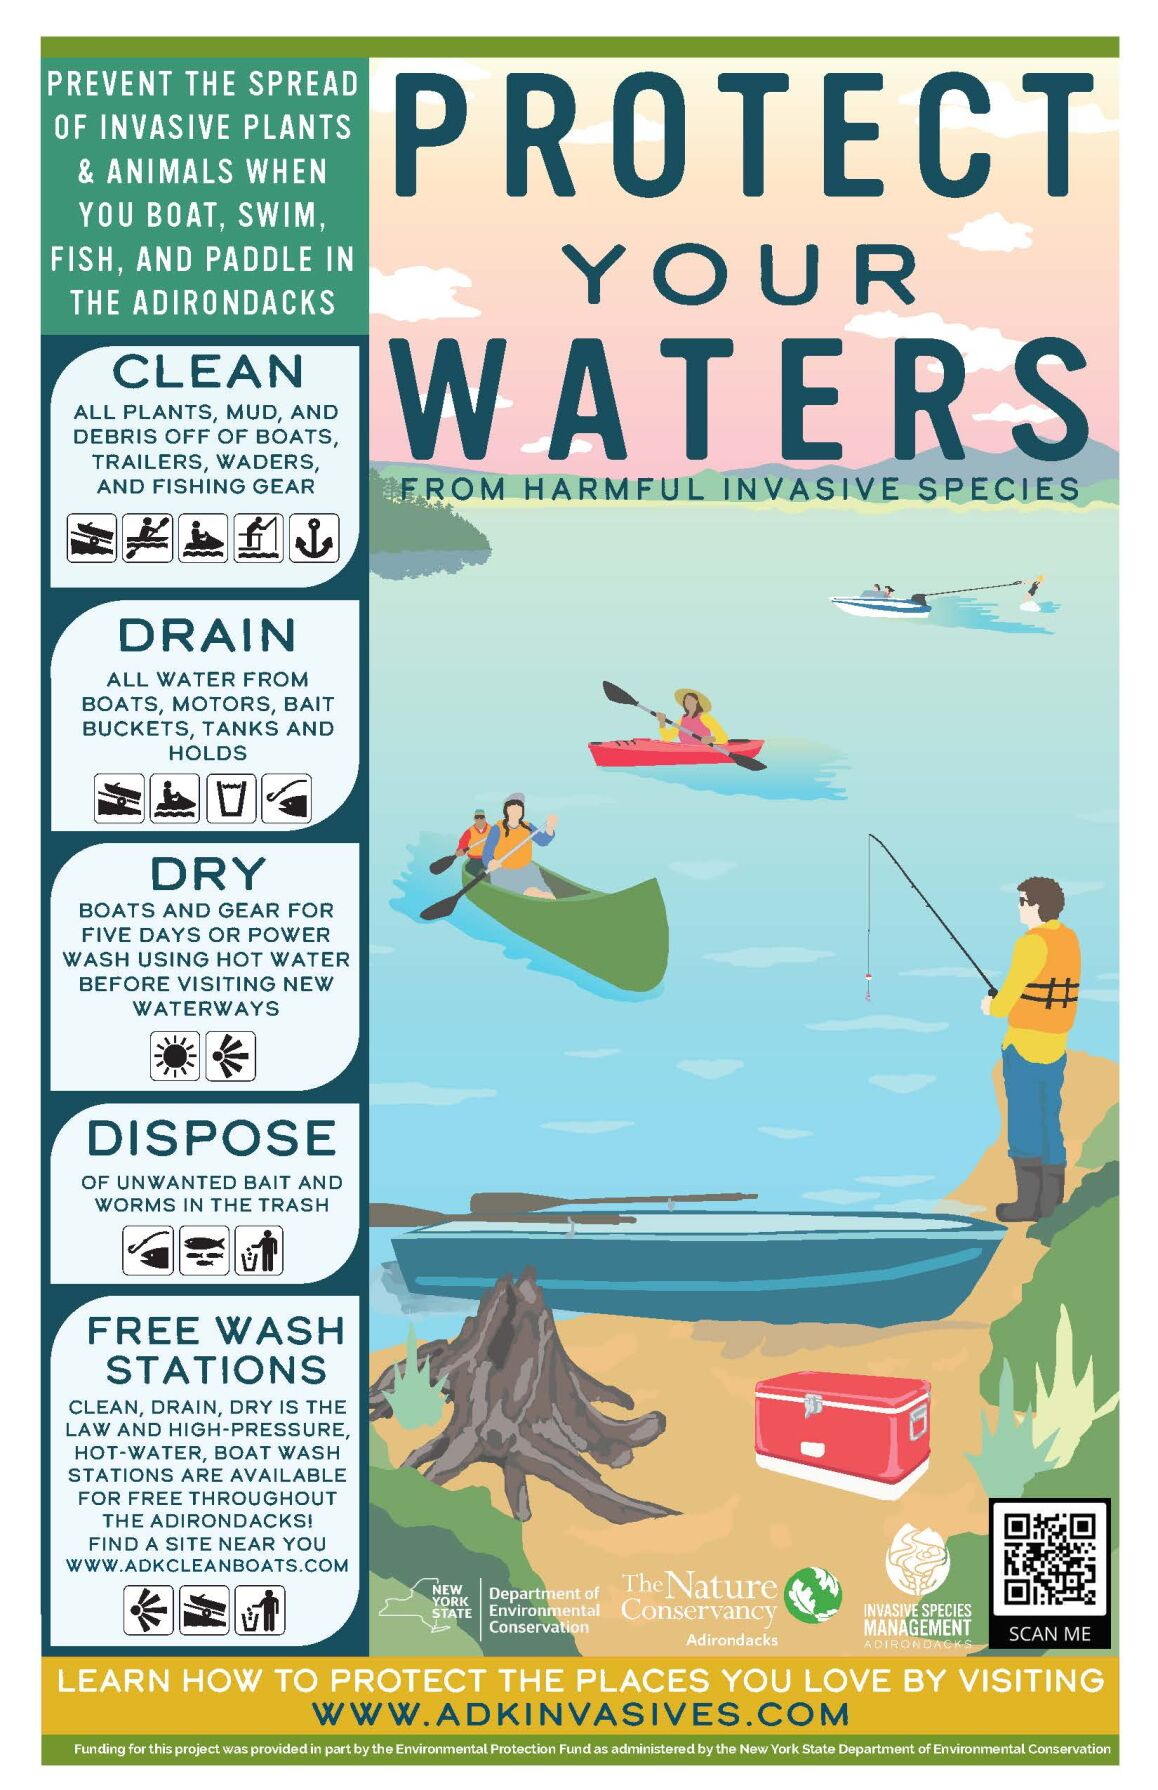 APIPP_PROTECT_YOUR_WATERS_POSTER.jpg